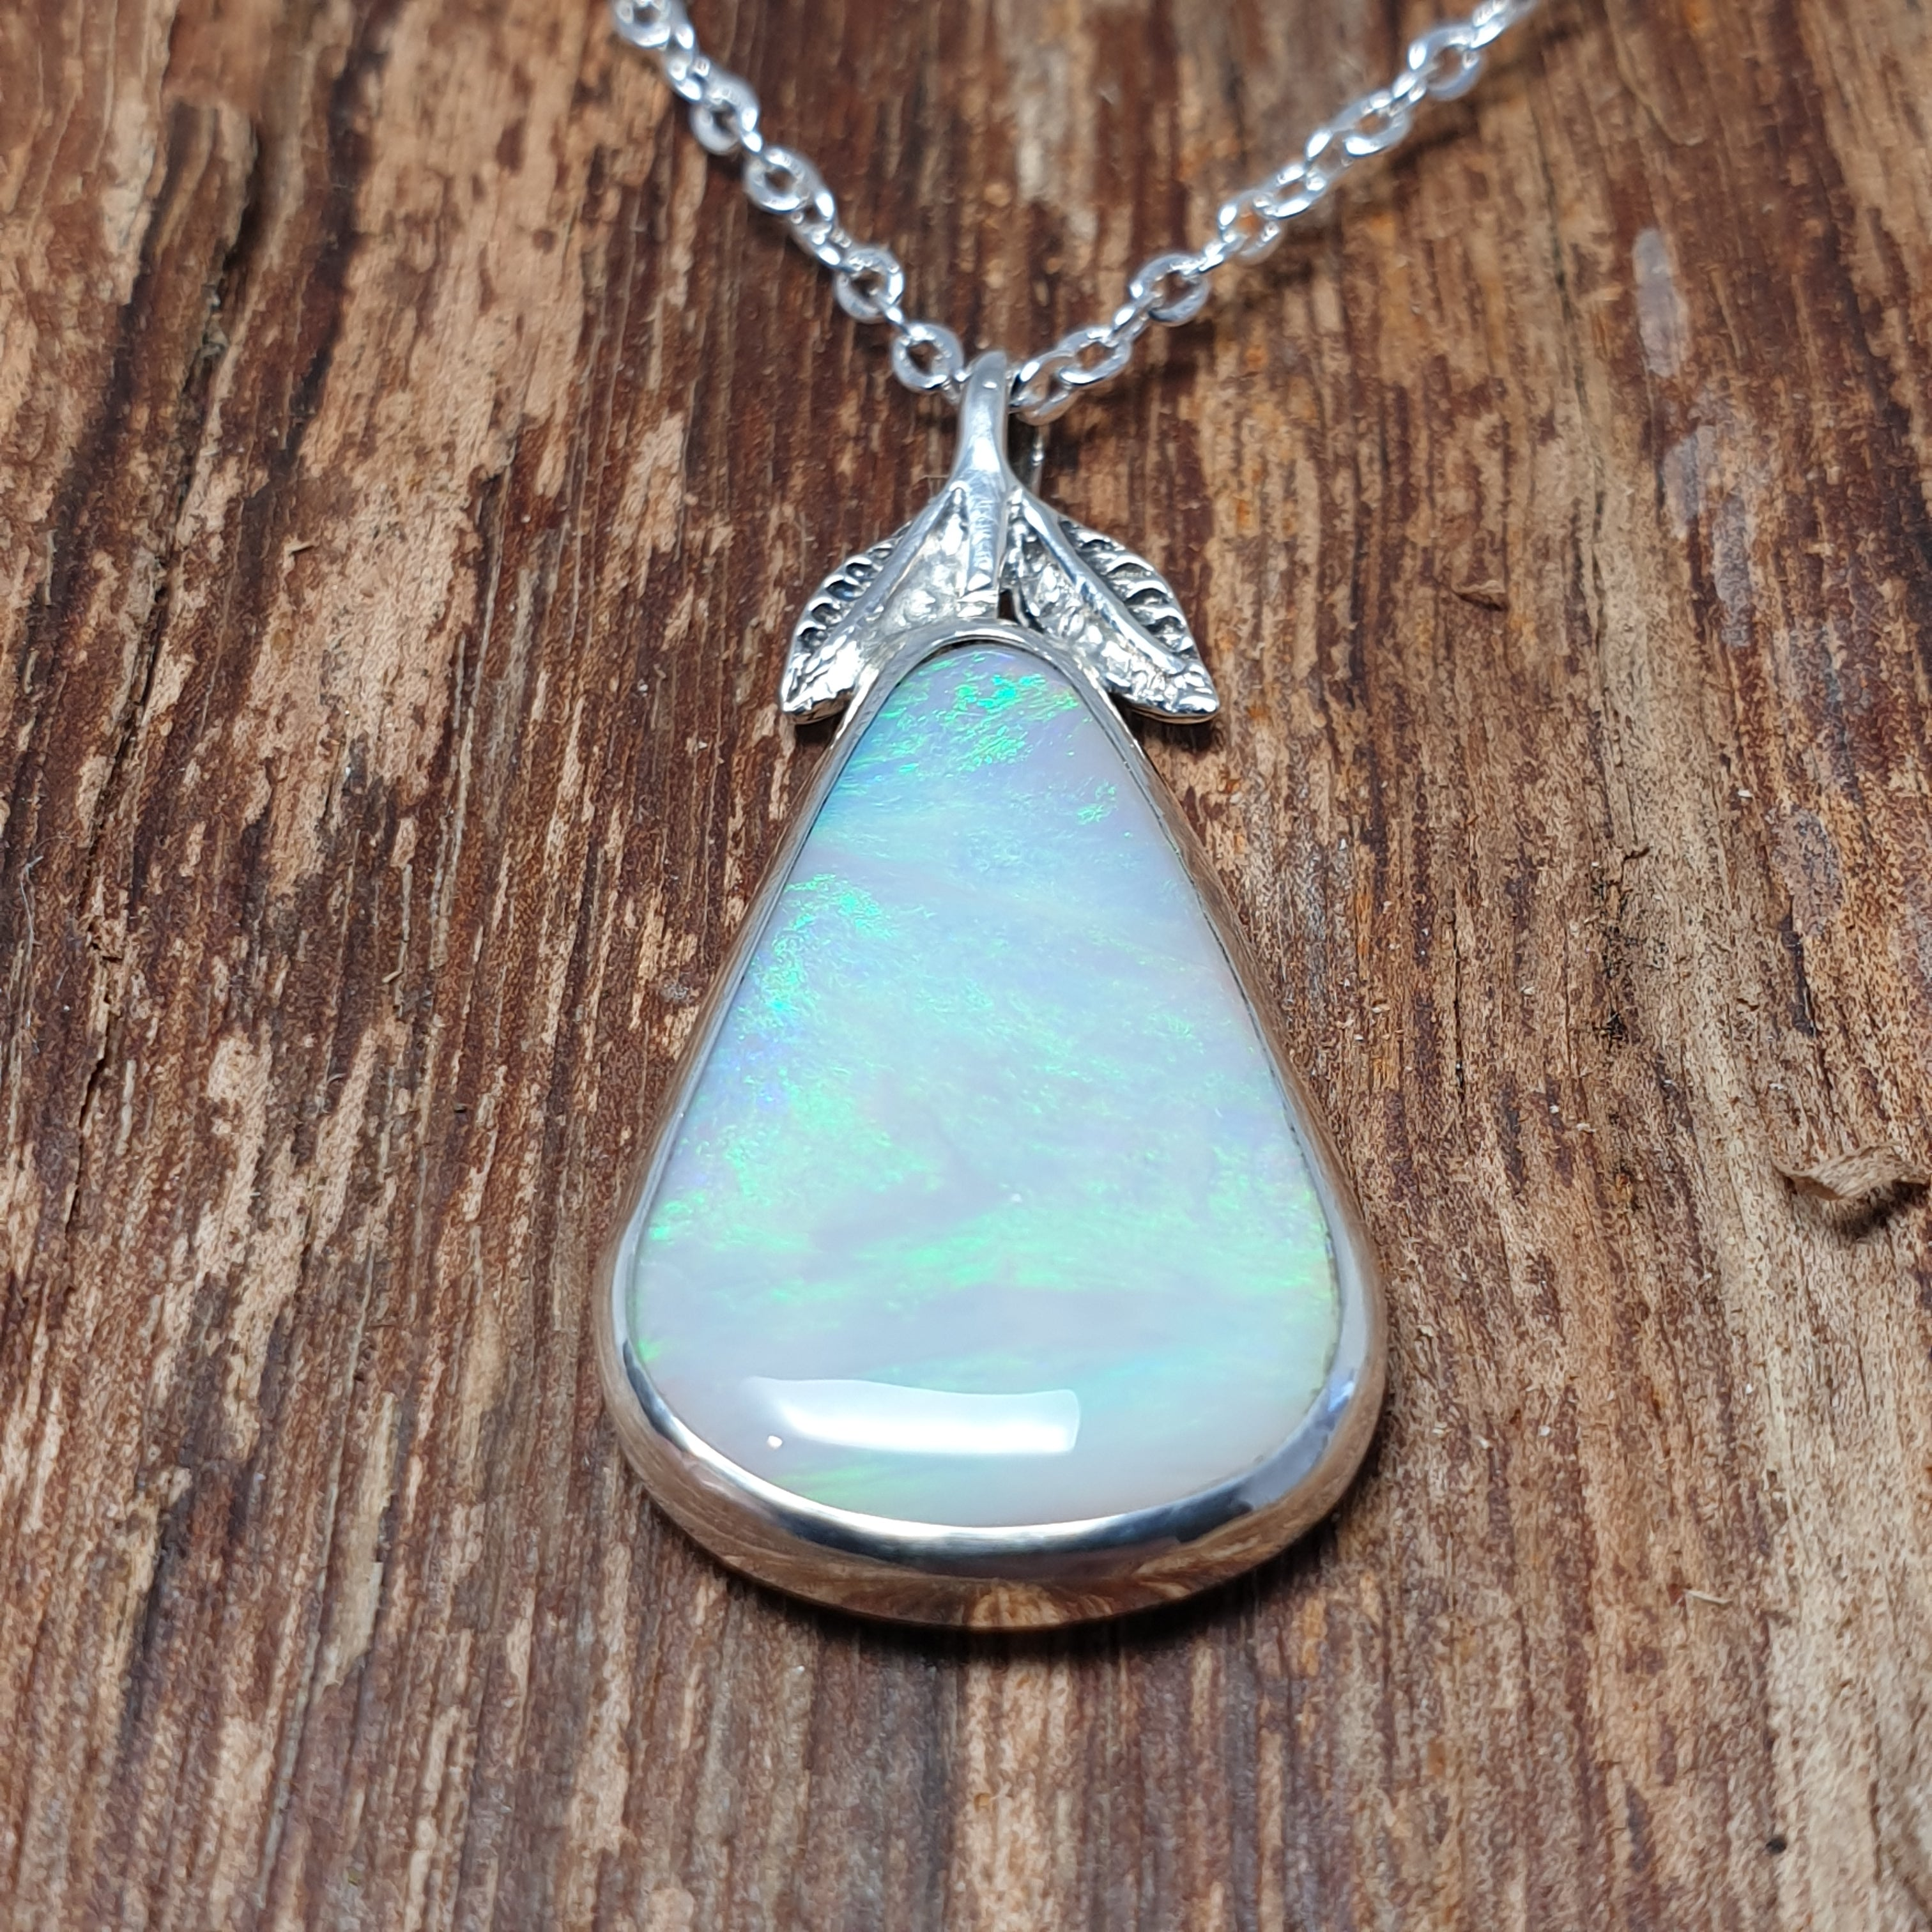 Australian Opal Pendant mined from Coober Pedy 056R